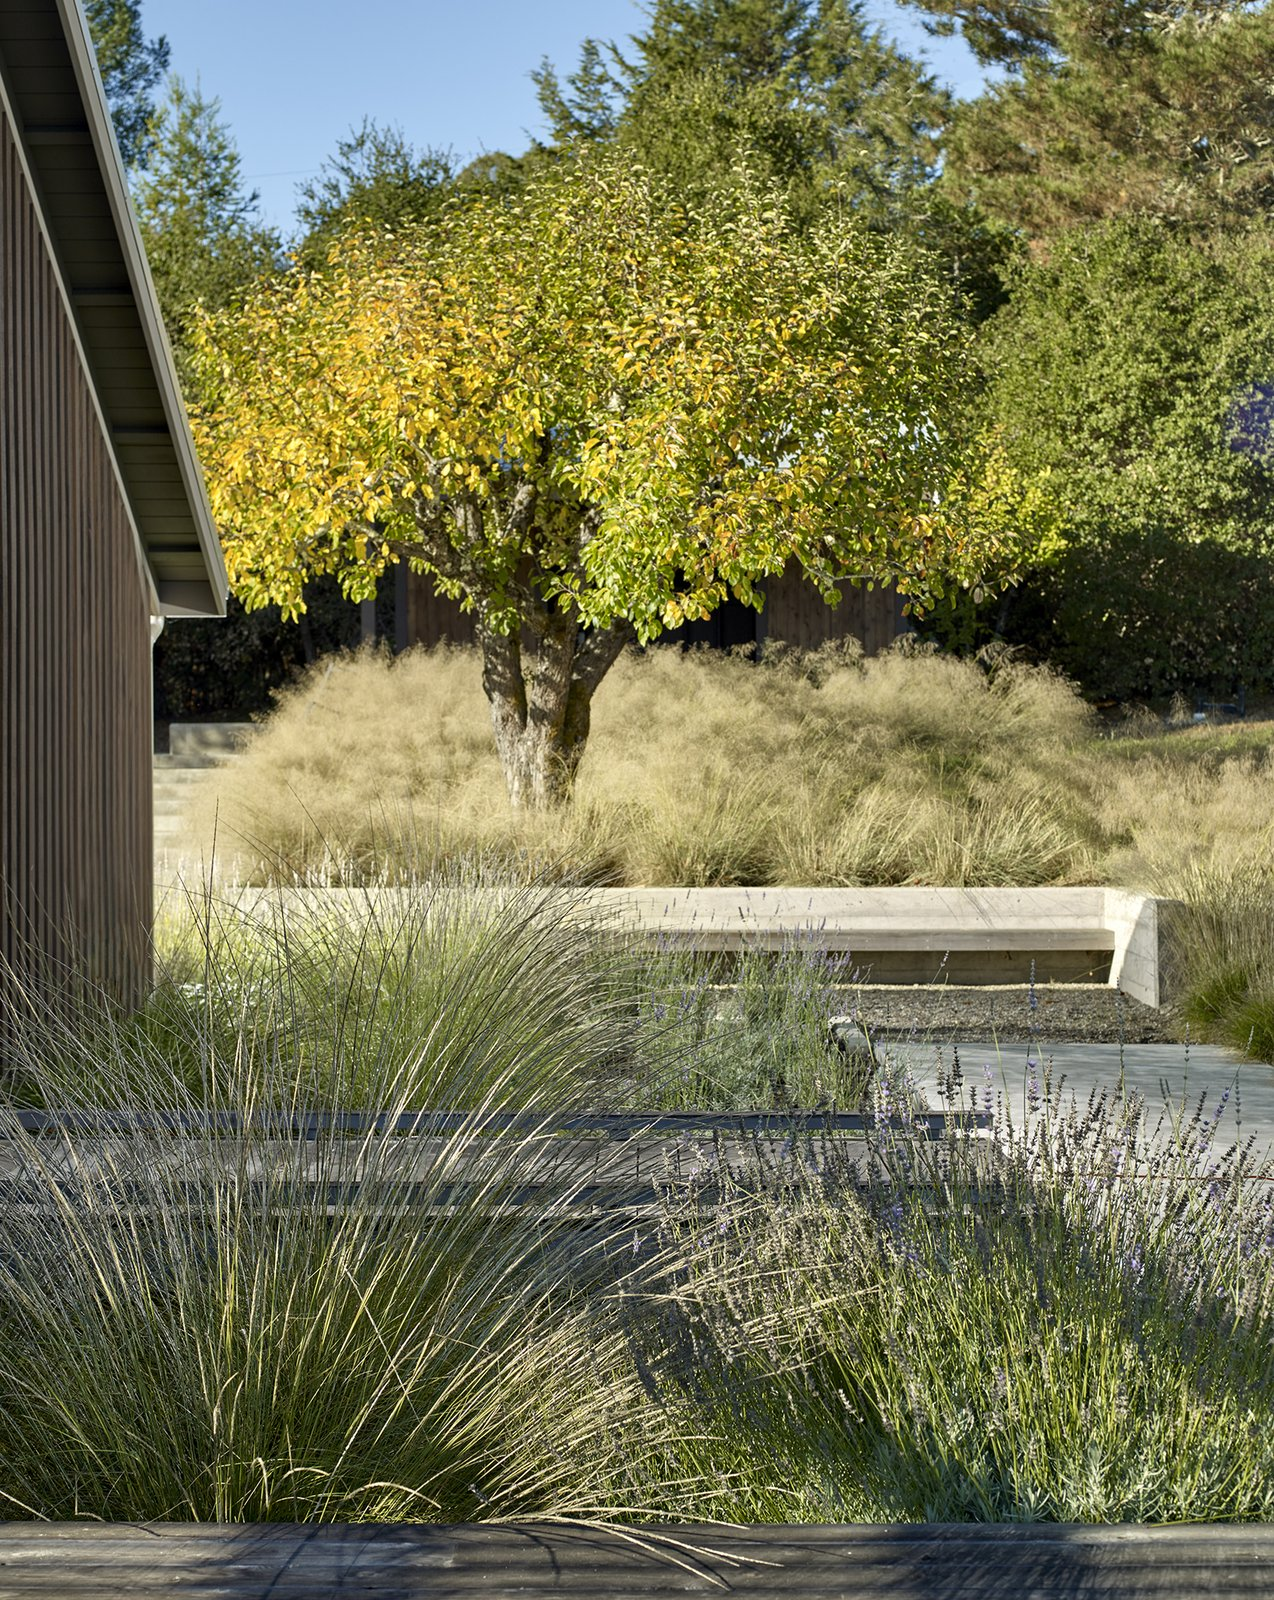 Outdoor, Shrubs, Lap Pools, Tubs, Shower, Concrete Pools, Tubs, Shower, Back Yard, Hardscapes, Side Yard, Horizontal Fences, Wall, Gardens, Decomposed Granite Patio, Porch, Deck, Flowers, Swimming Pools, Tubs, Shower, Walkways, Woodland, Garden, Large Patio, Porch, Deck, Concrete Fences, Wall, Grass, Landscape Lighting, and Concrete Patio, Porch, Deck Orchard House Landscape  Orchard House by Cary Bernstein Architect